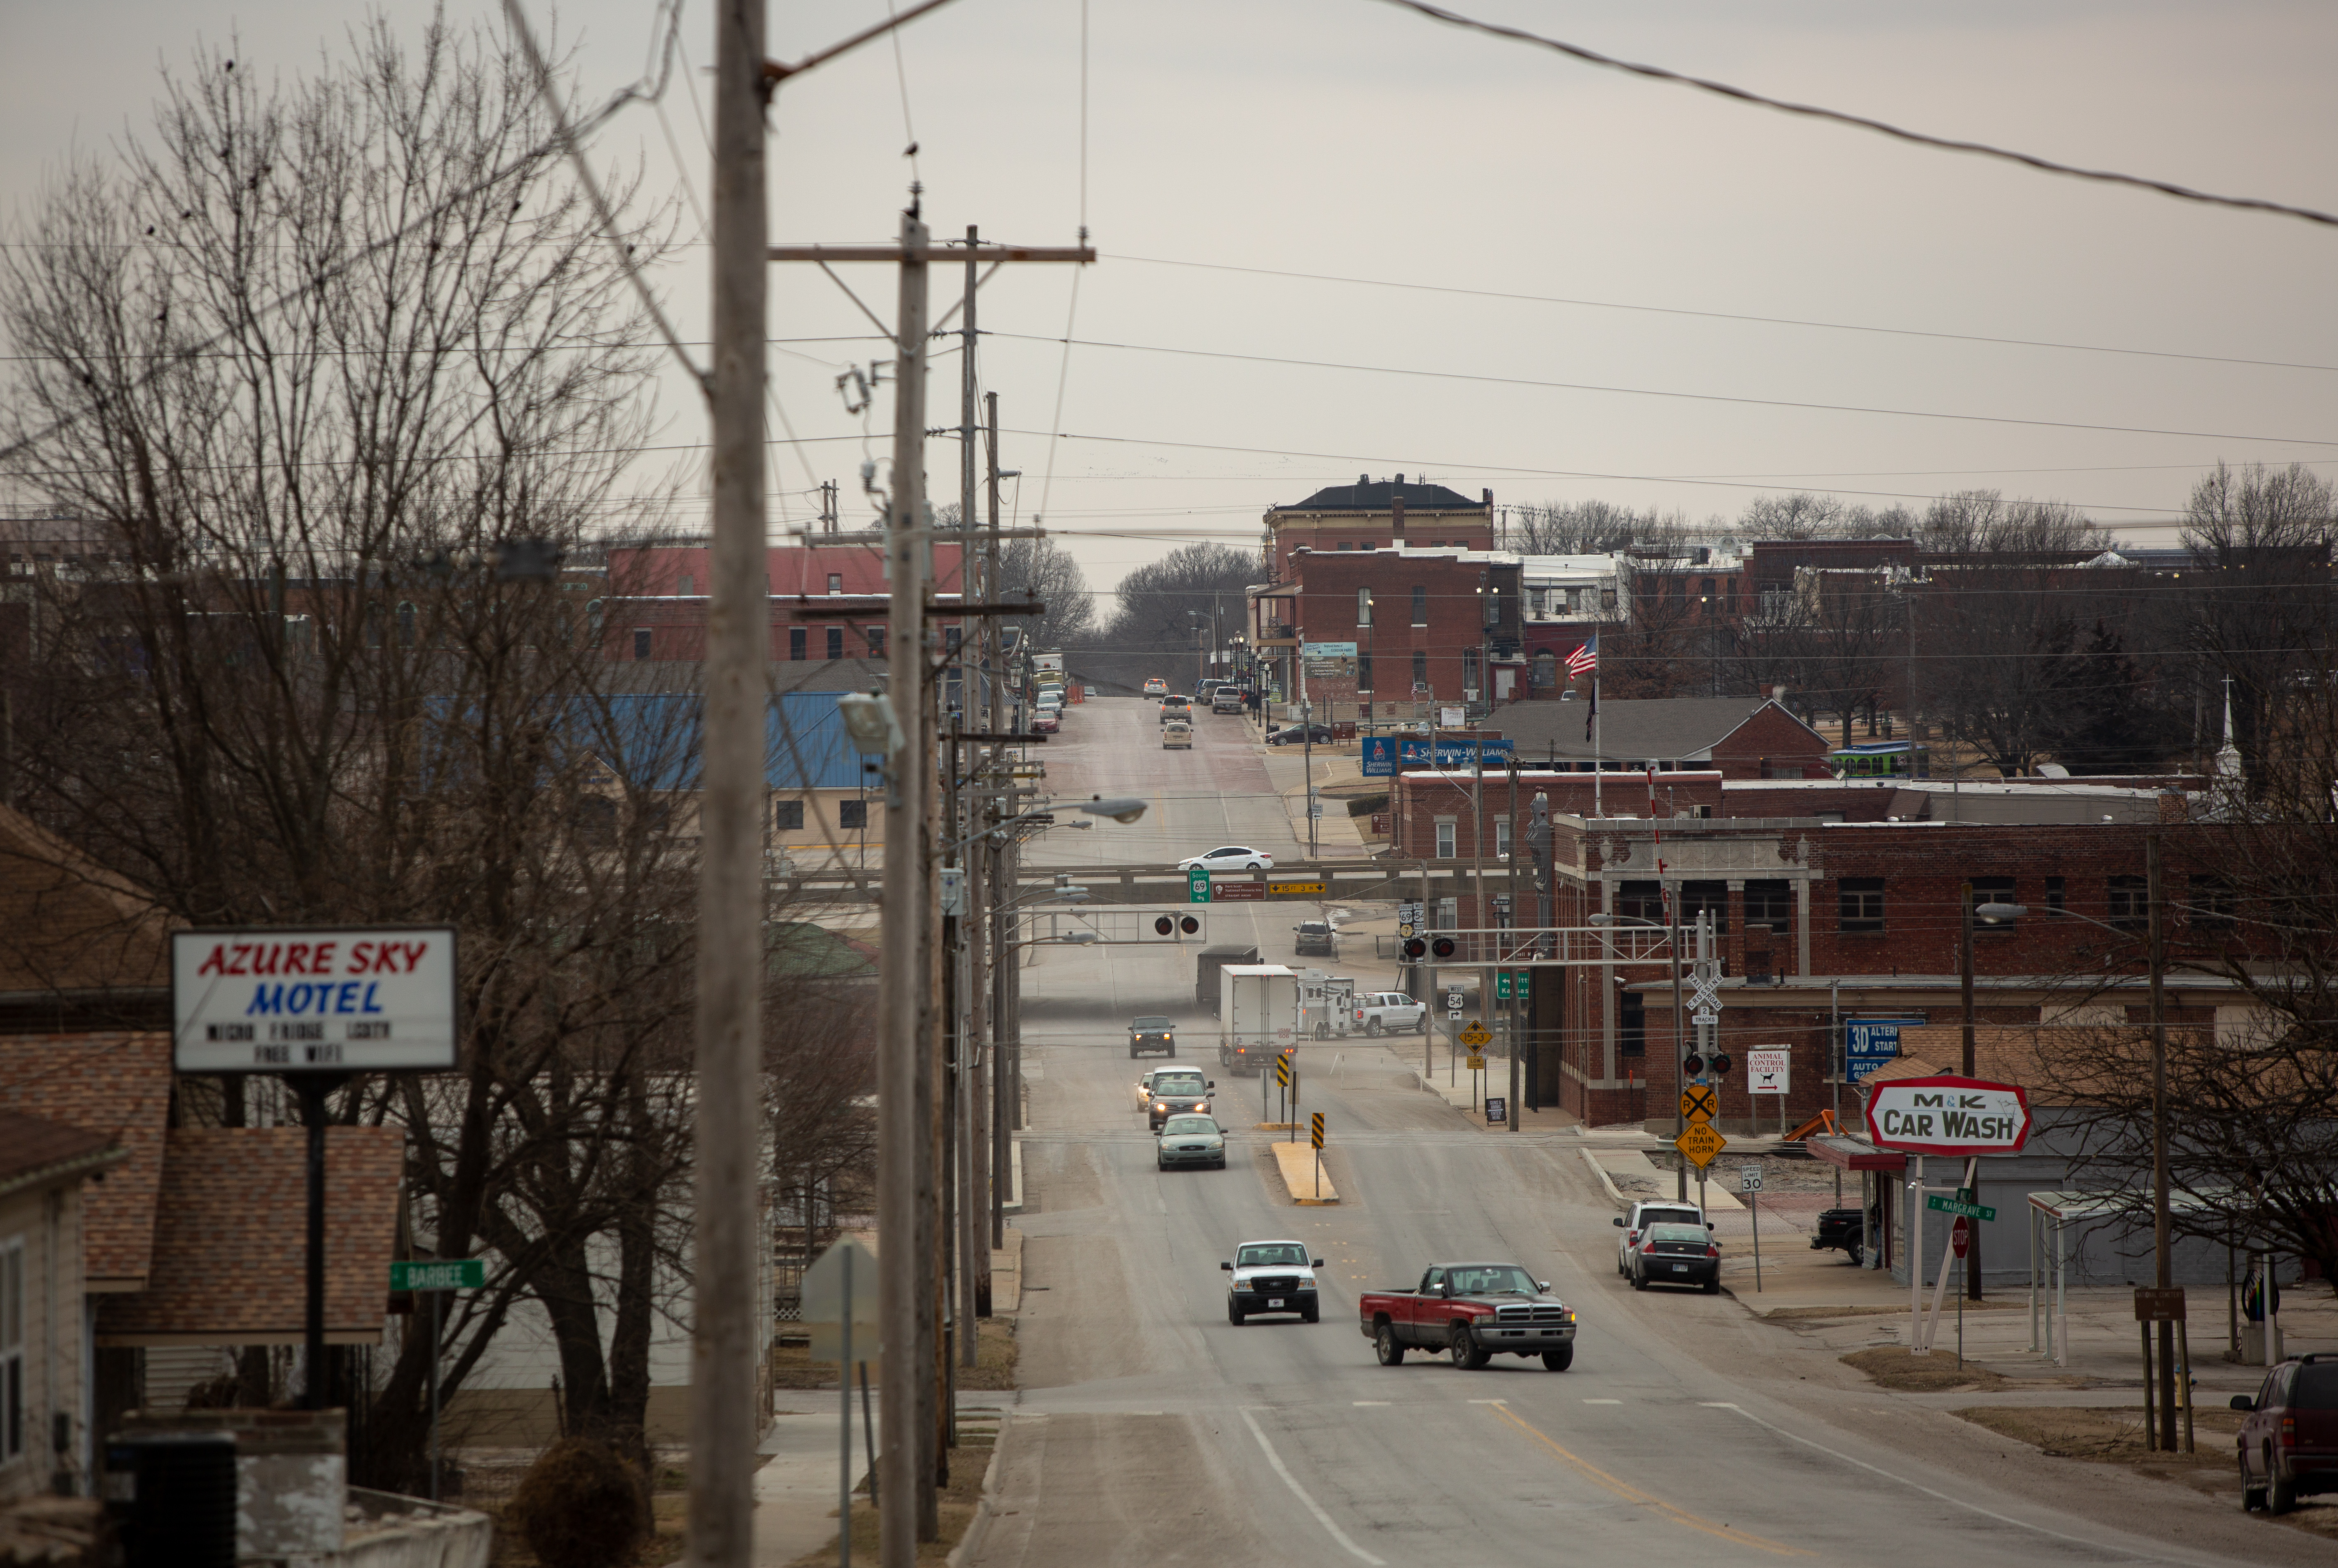 Listen: After Its Hospital Closes, A Pioneer Kansas Town Searches For What Comes Next